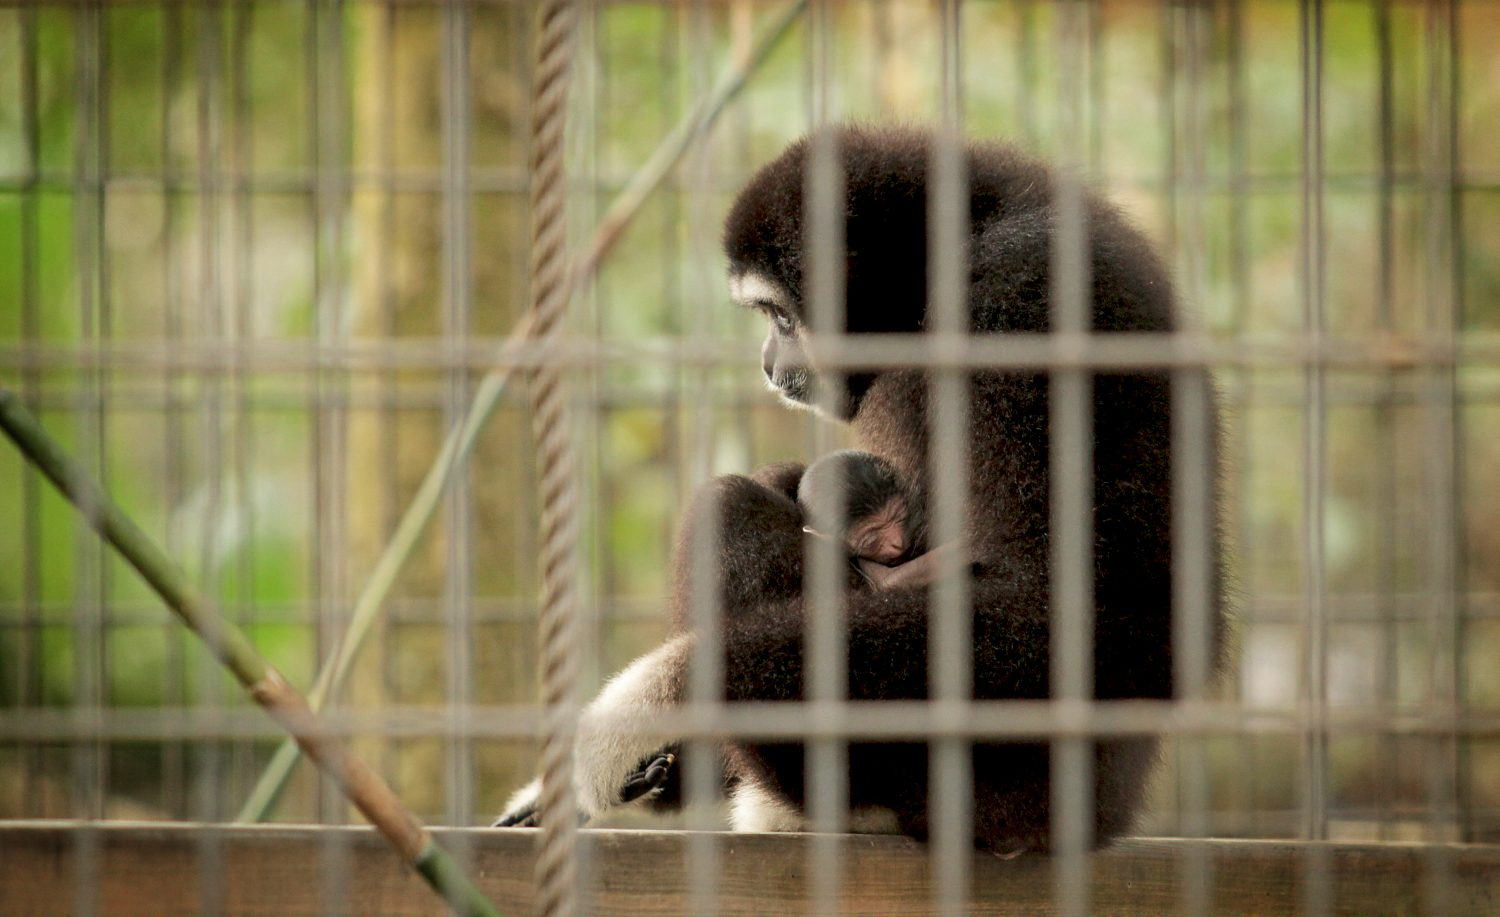 An adult gibbon holds the new gibbon baby. The Santa Fe College Teaching Zoo will be altering its Boo at the Zoo Halloween event to accommodate the new baby.